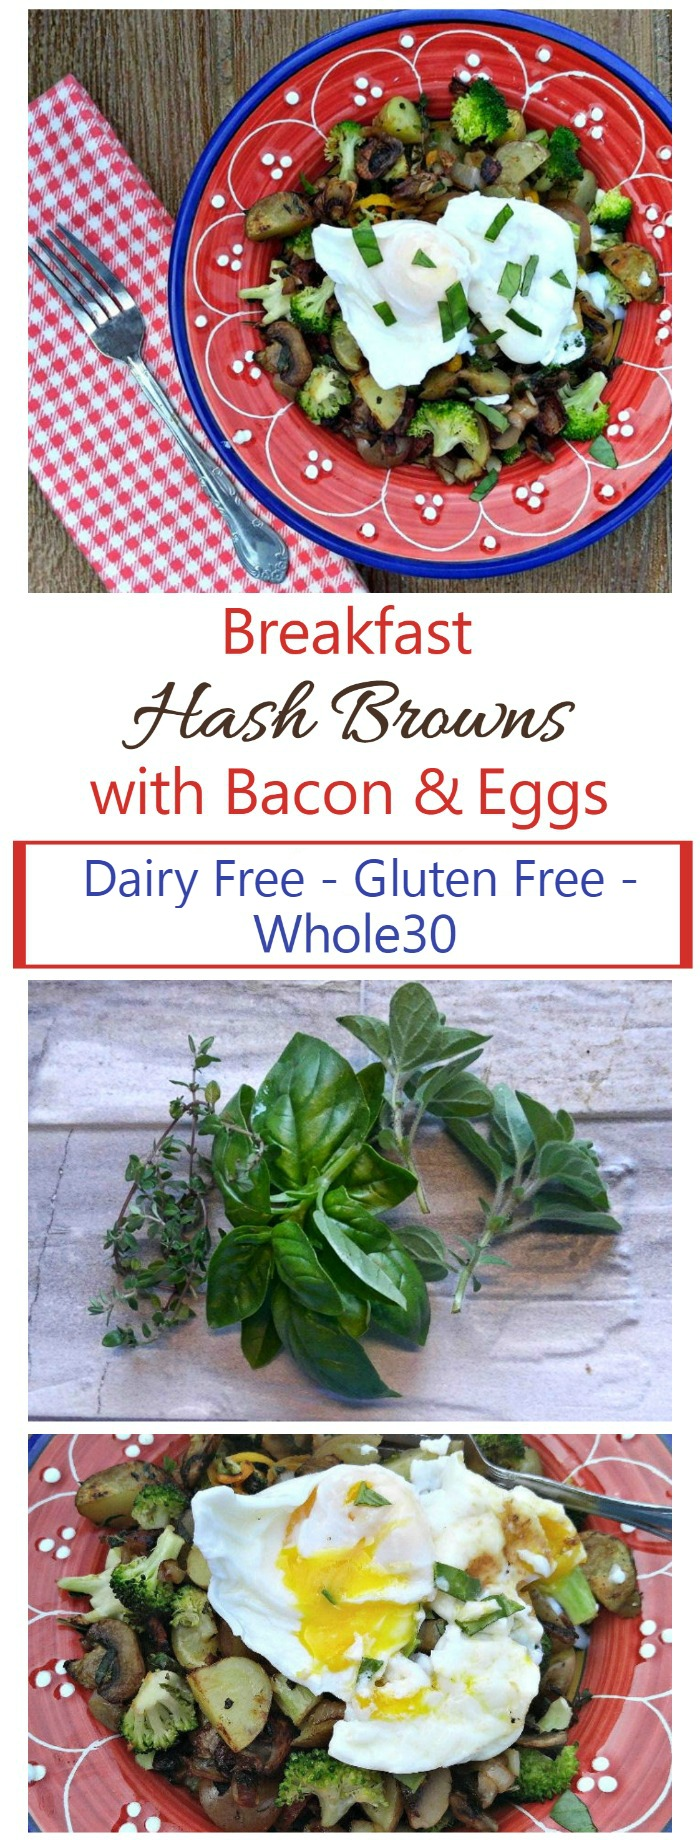 These breakfast hash browns with bacon and eggs are healthy, hearty and so delicious. Ready in less than 20 minutes and fits into the Paleo, (use sweet potatoes instead of white) Gluten free and Whole30 diet plans. #whole30